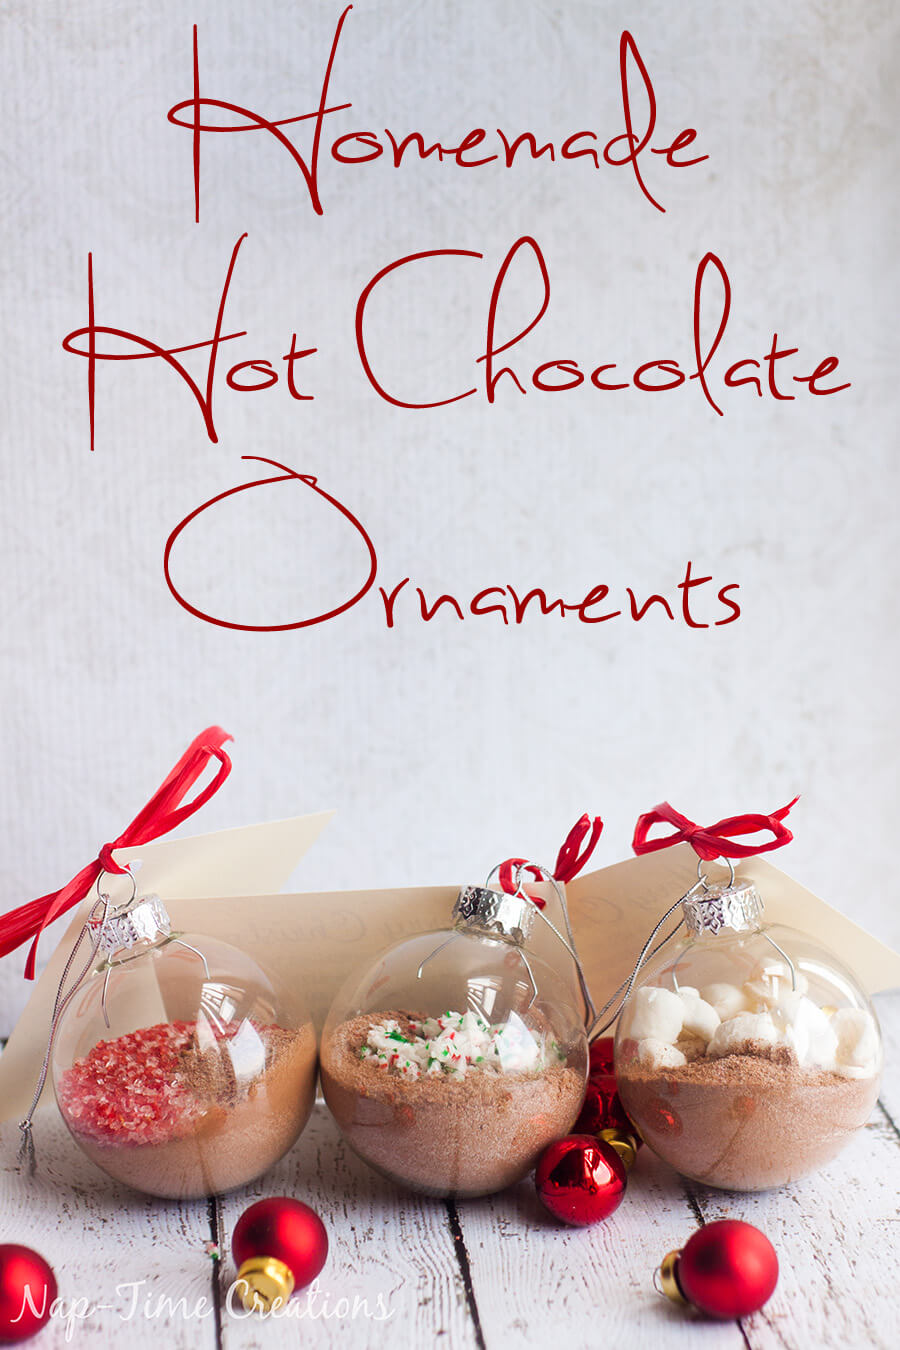 Homemade Hot Chocolate Ornament Gift and Recipe from LIfe Sew Savory